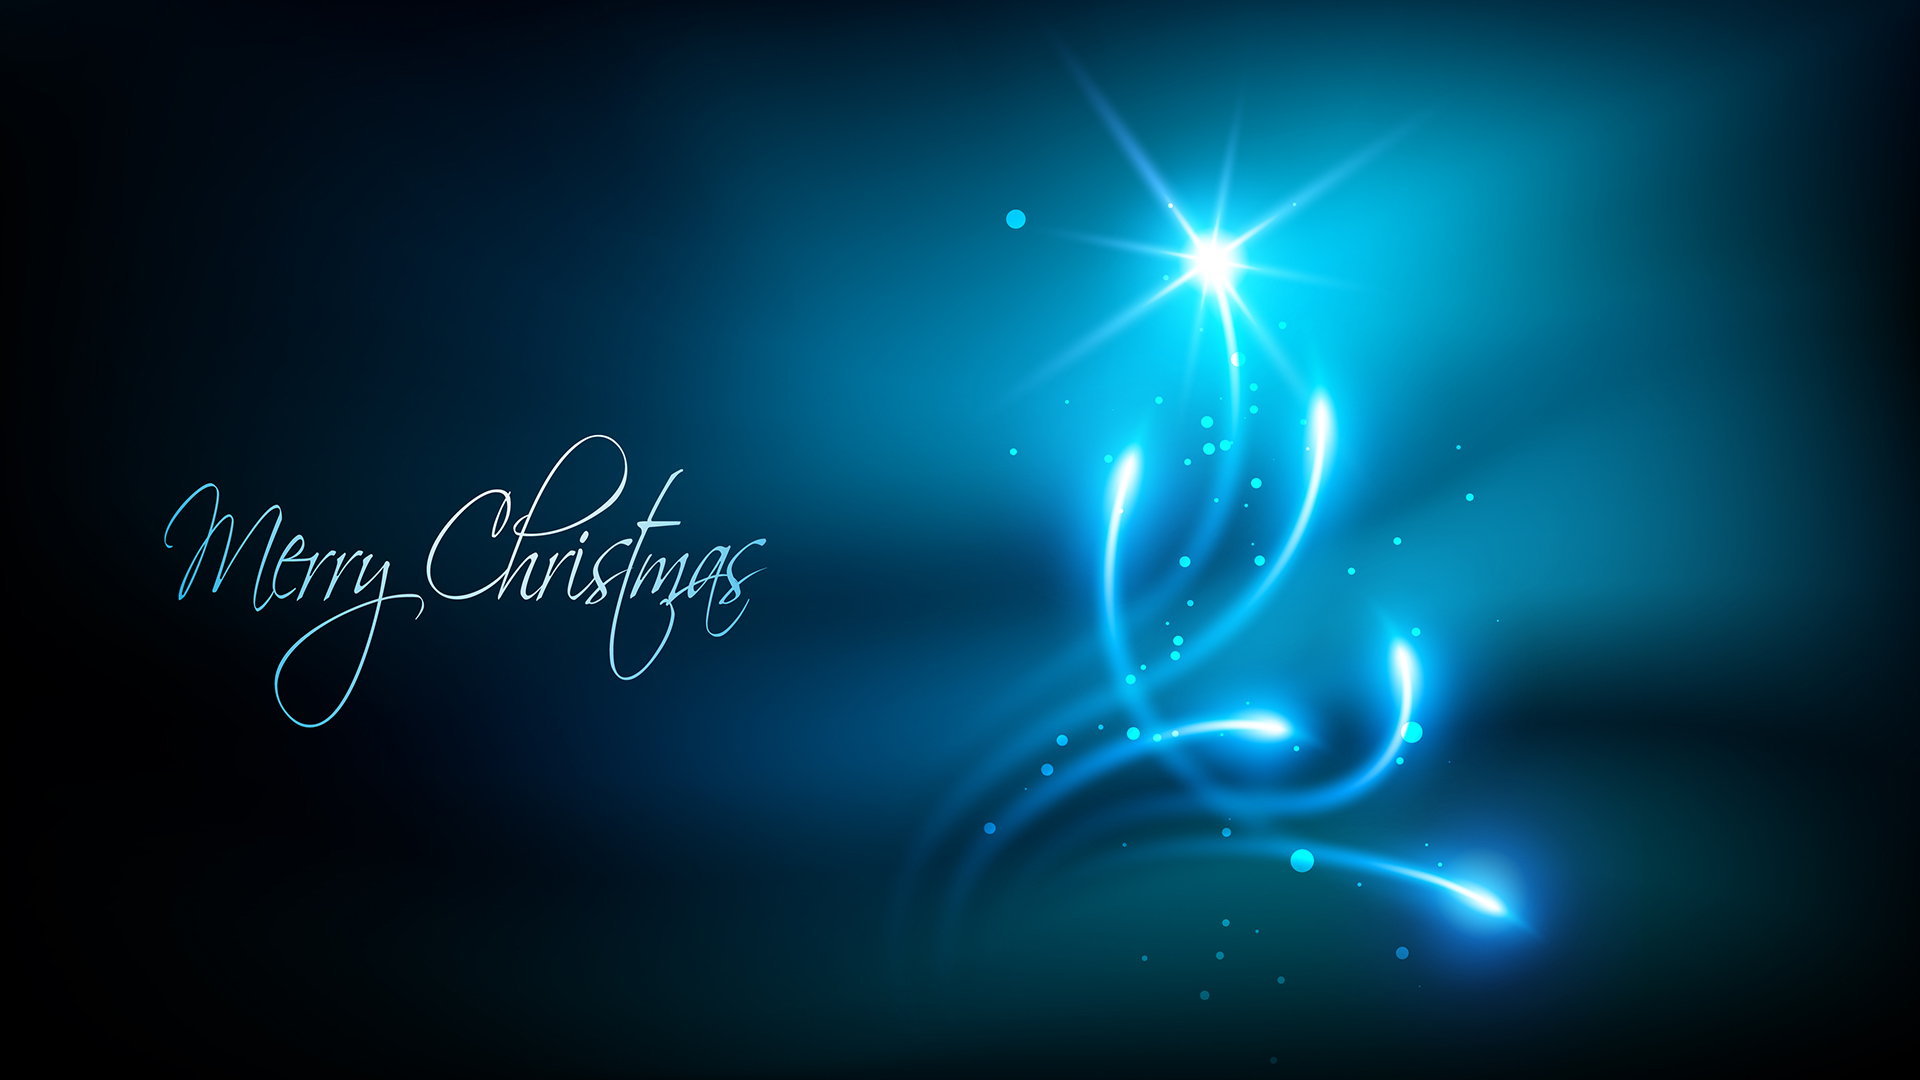 100 Most Wonderful Merry Christmas WishesWallpapers And